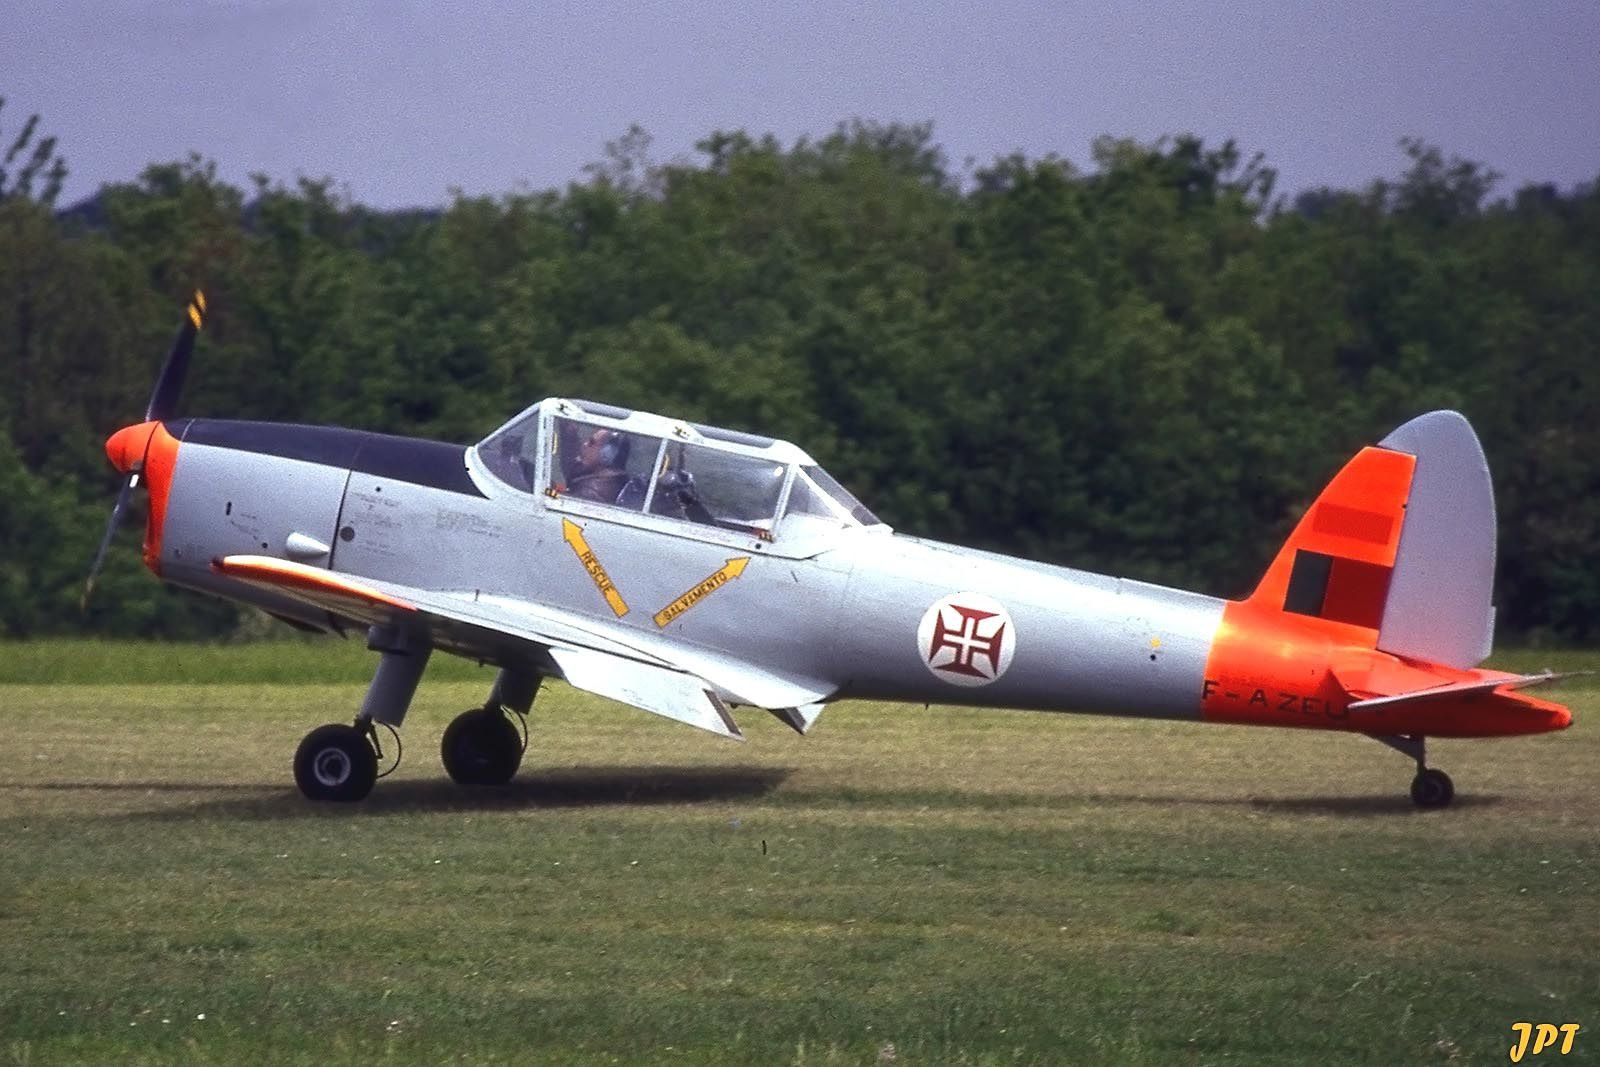 Le DHC-1 Chipmunk F-AZEU. (photo: Jean Pierre Touzeau)